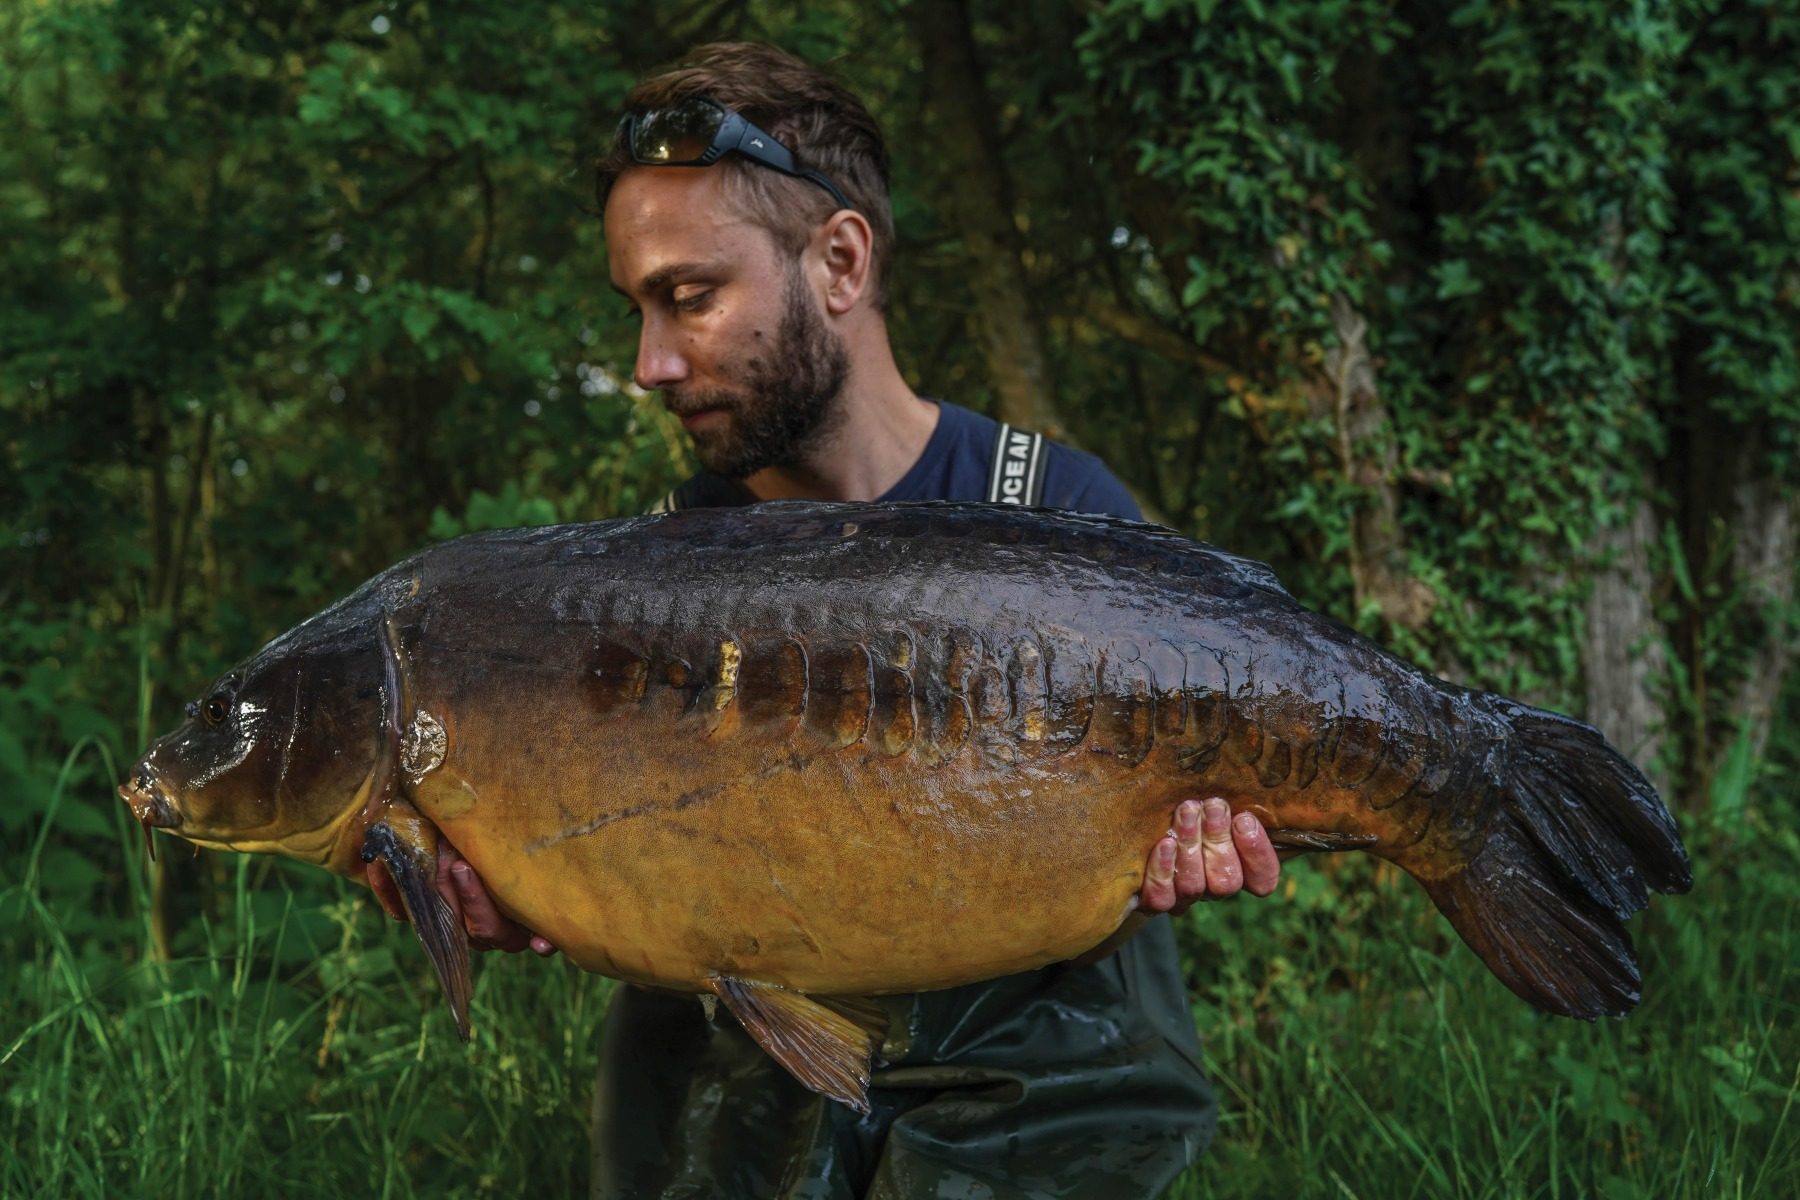 An awesome Half-Lin from the spring that took a liking to a washed-out hookbait on the Hinge